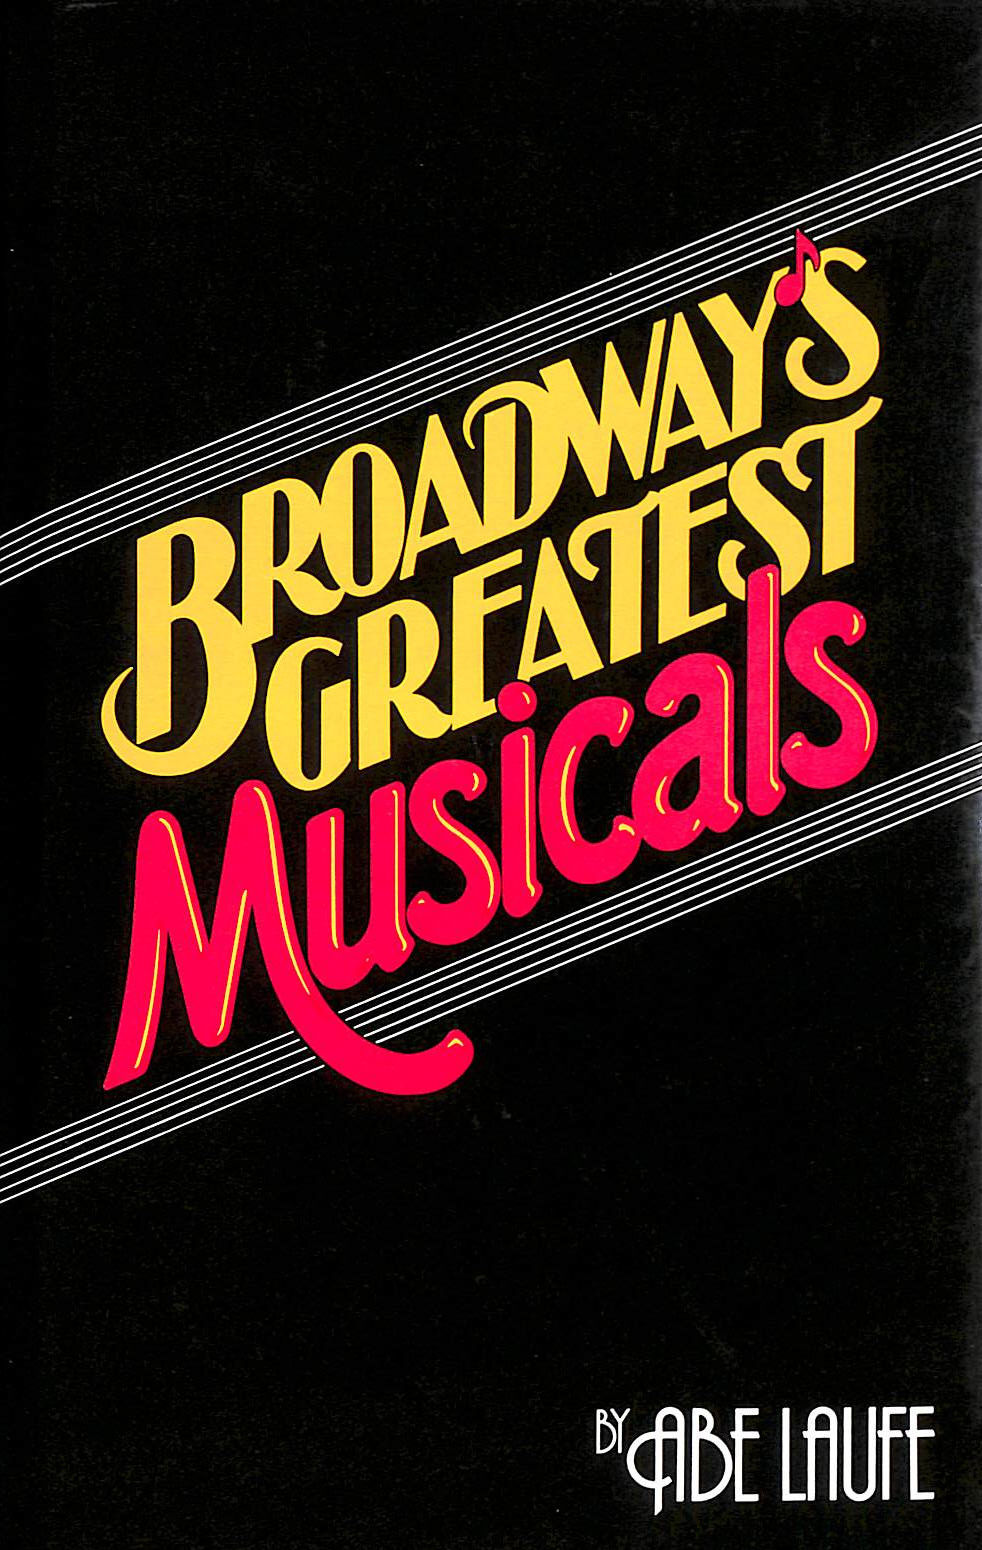 Image for Broadway's Greatest Musicals